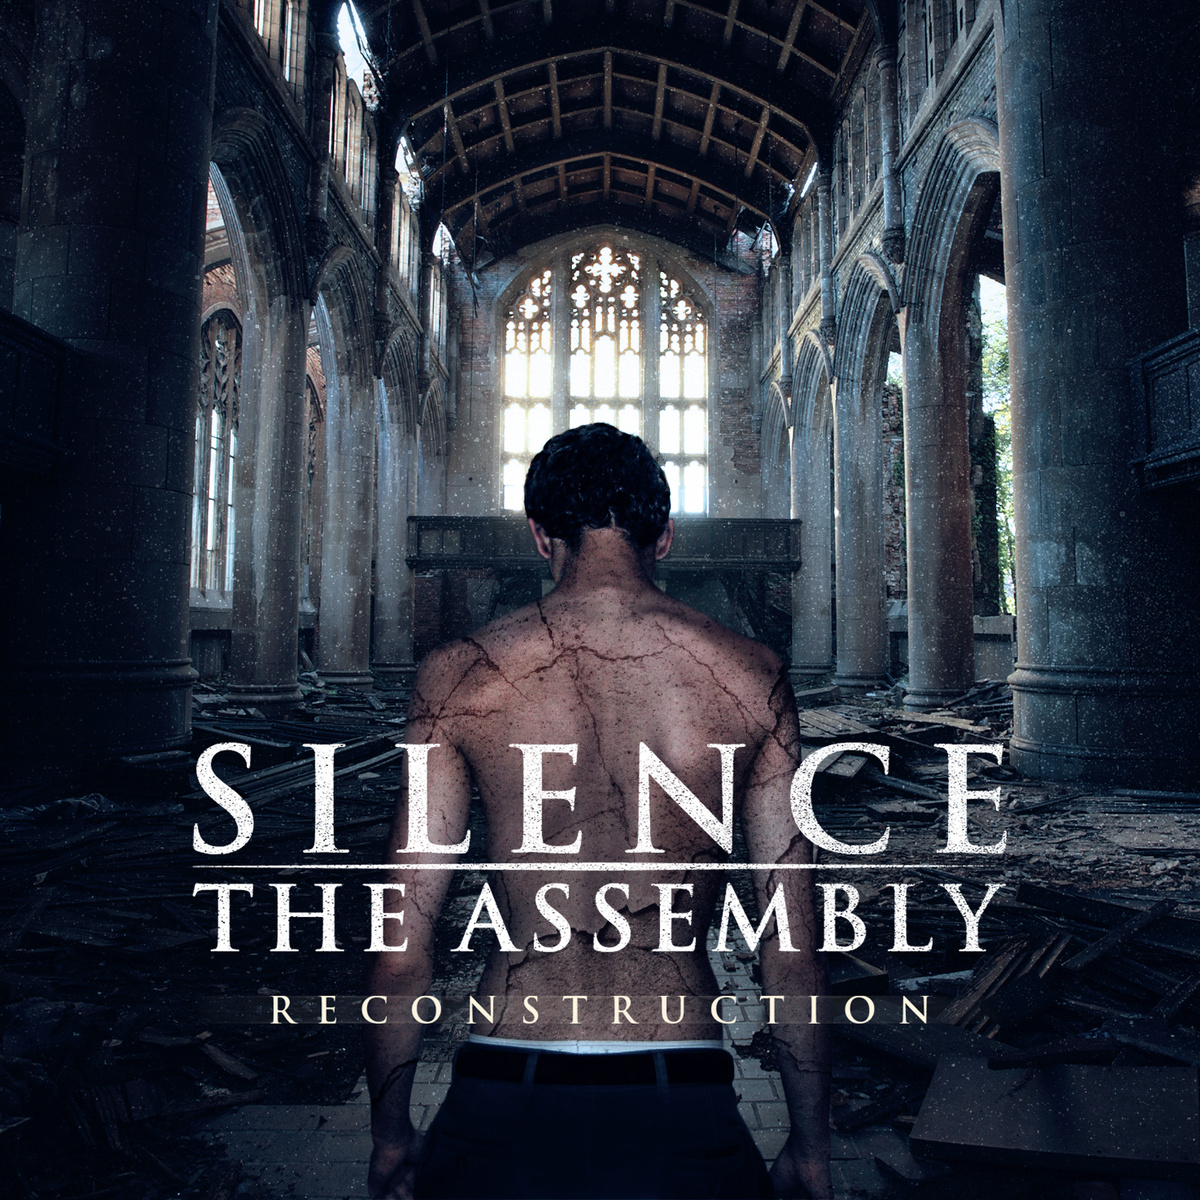 Silence_the_assembly_reconstruction